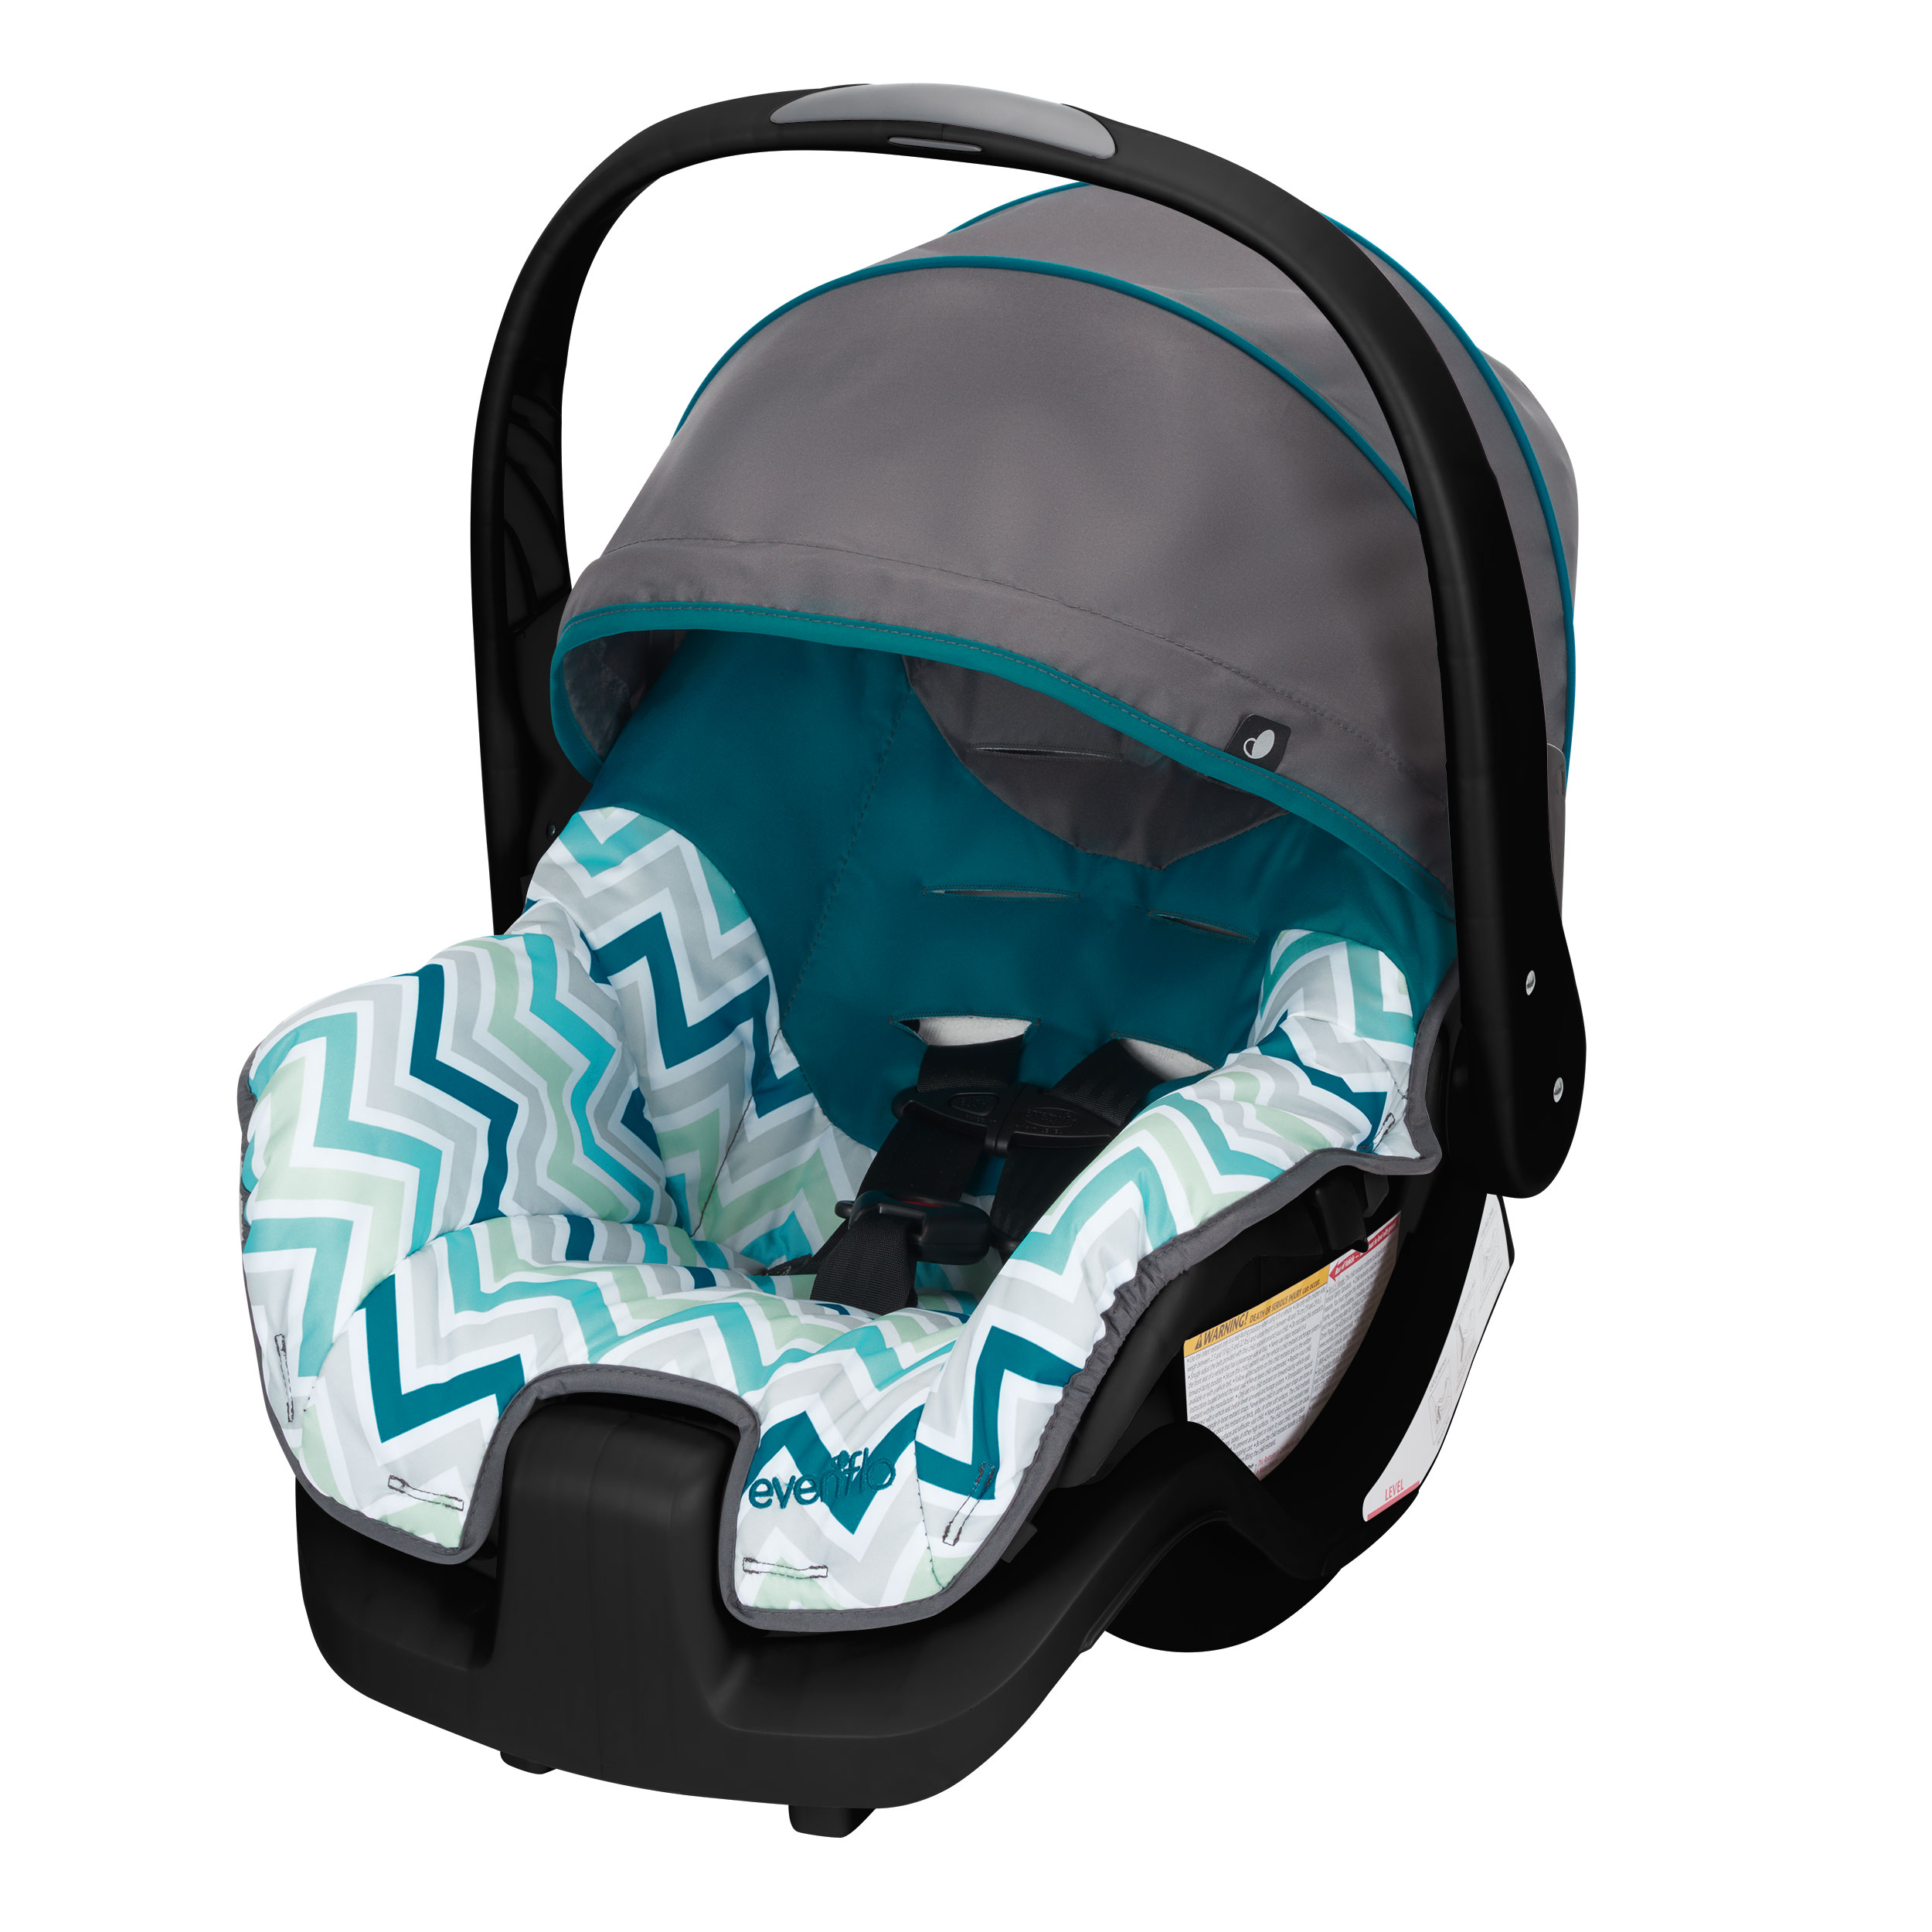 Evenflo Nurture Infant Car Seat, Max